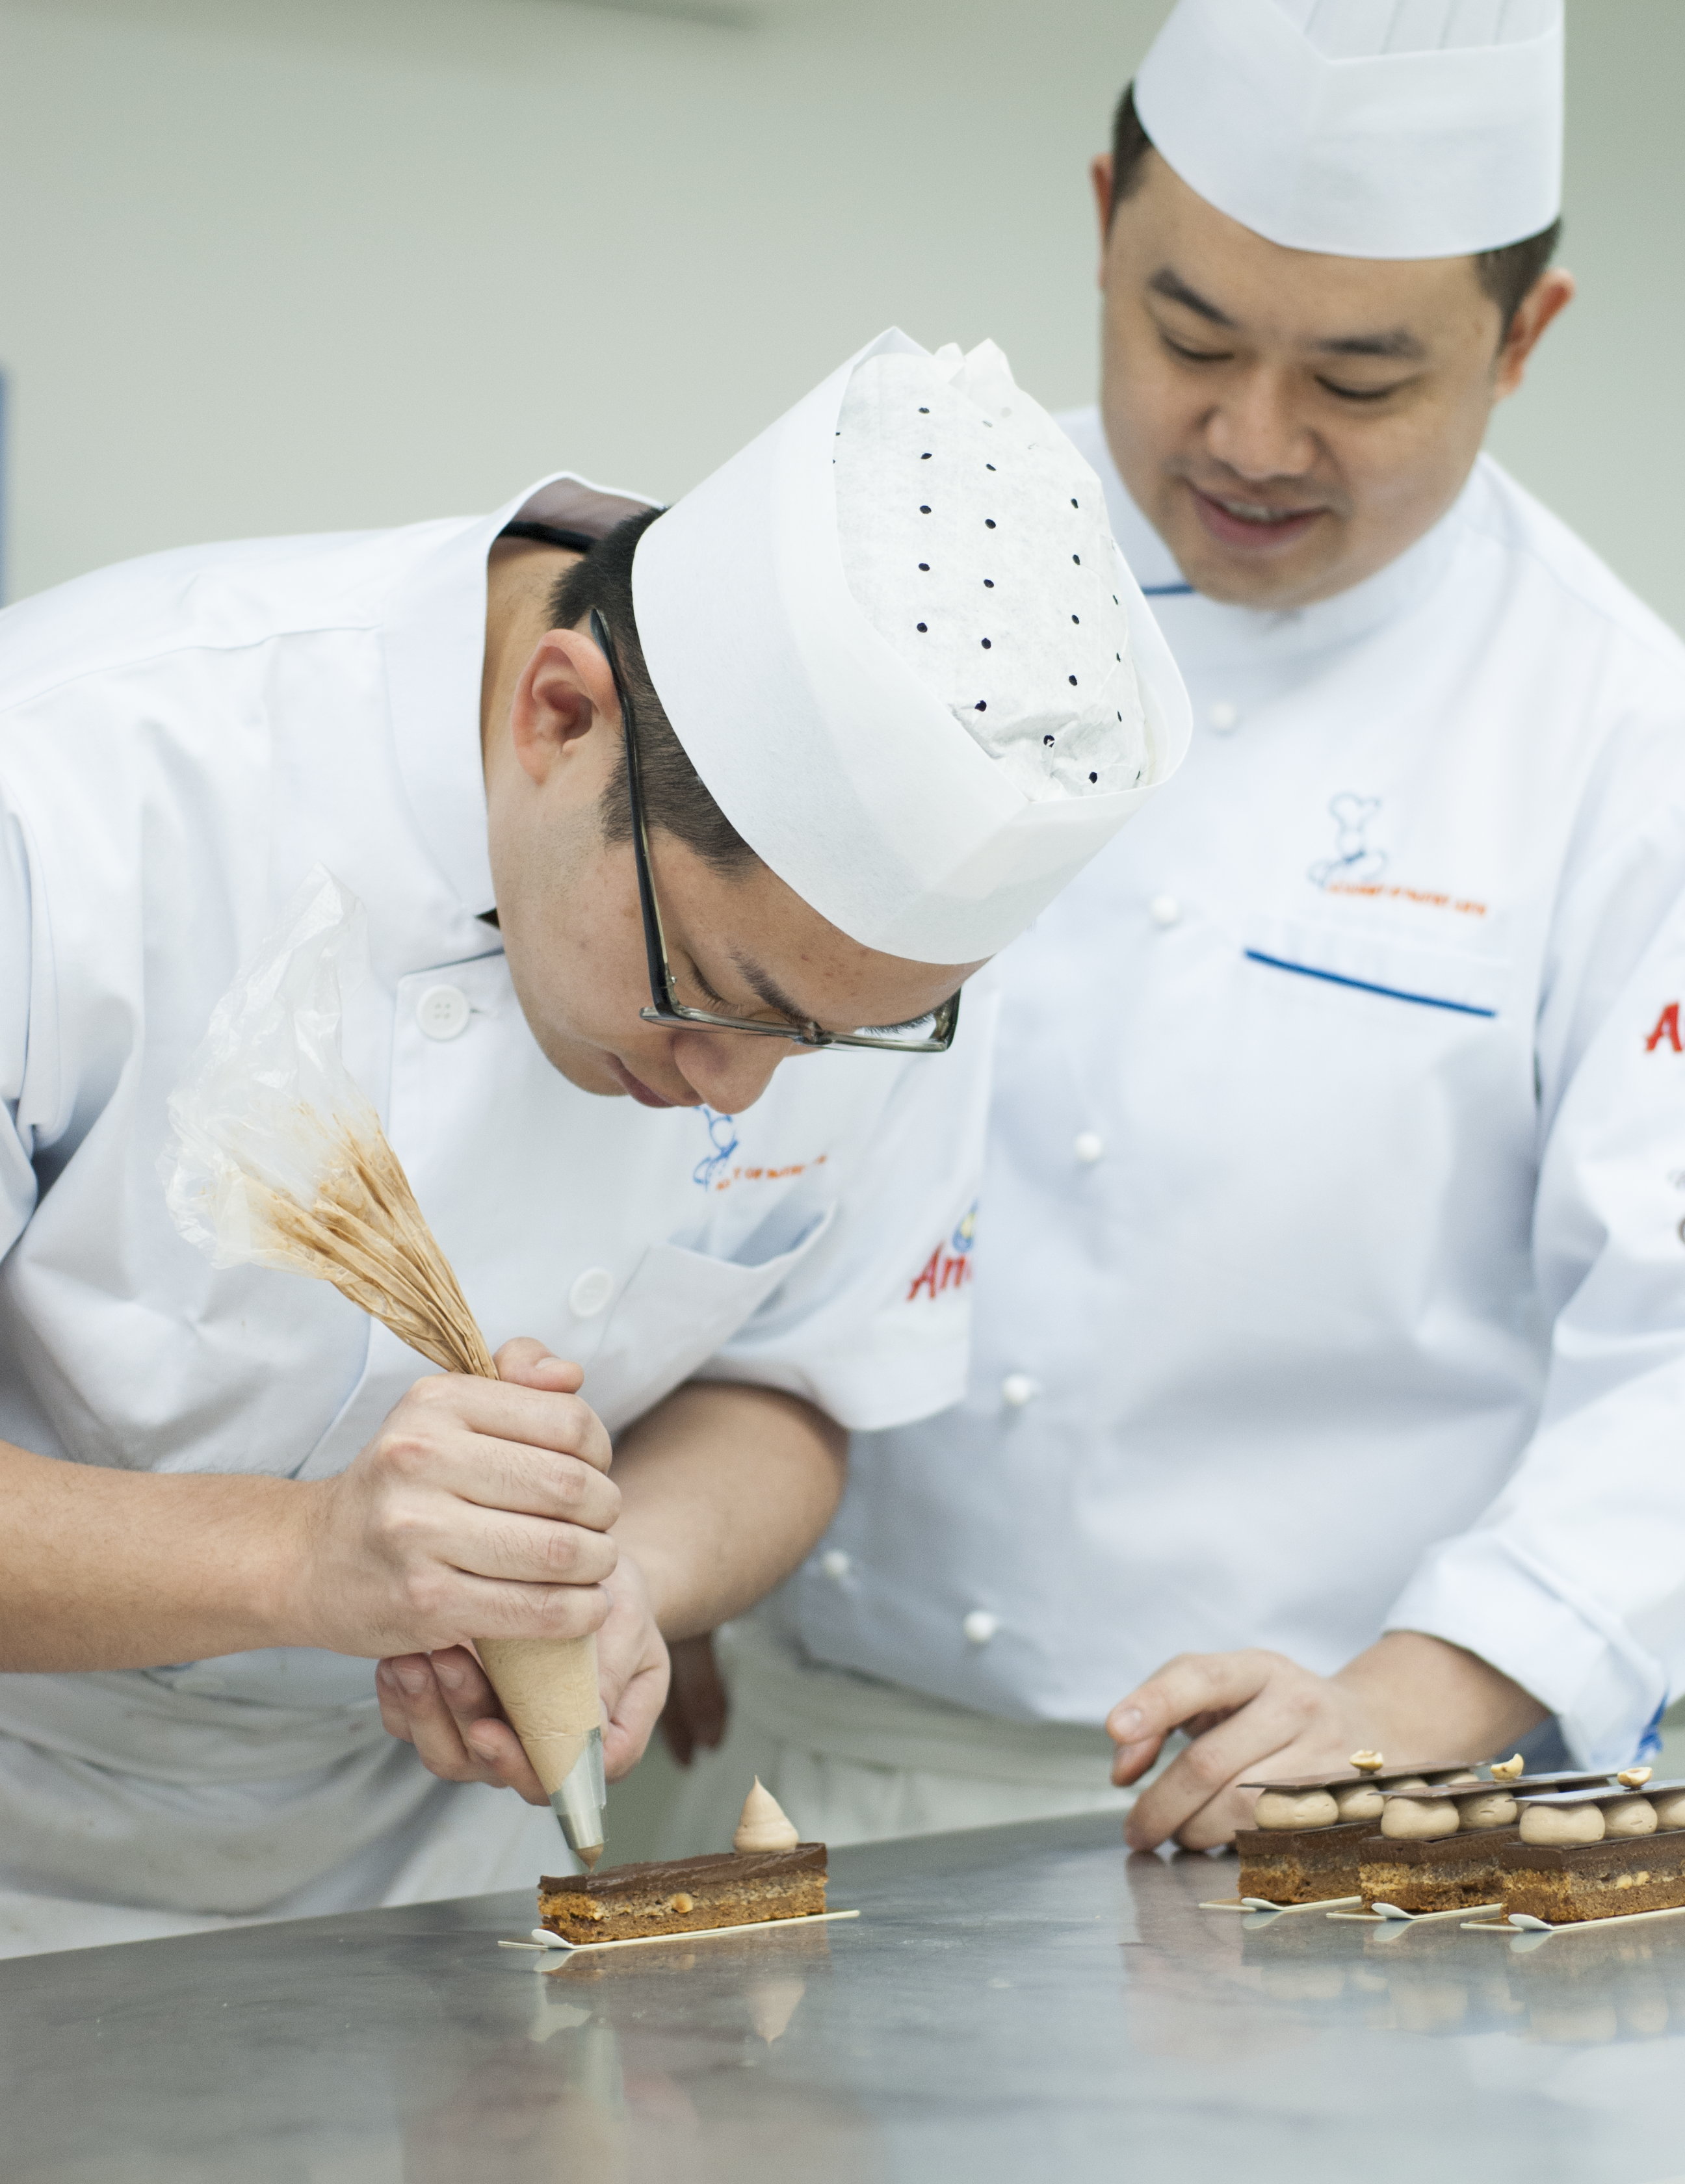 pastry chef la introduction - HD2592×3360